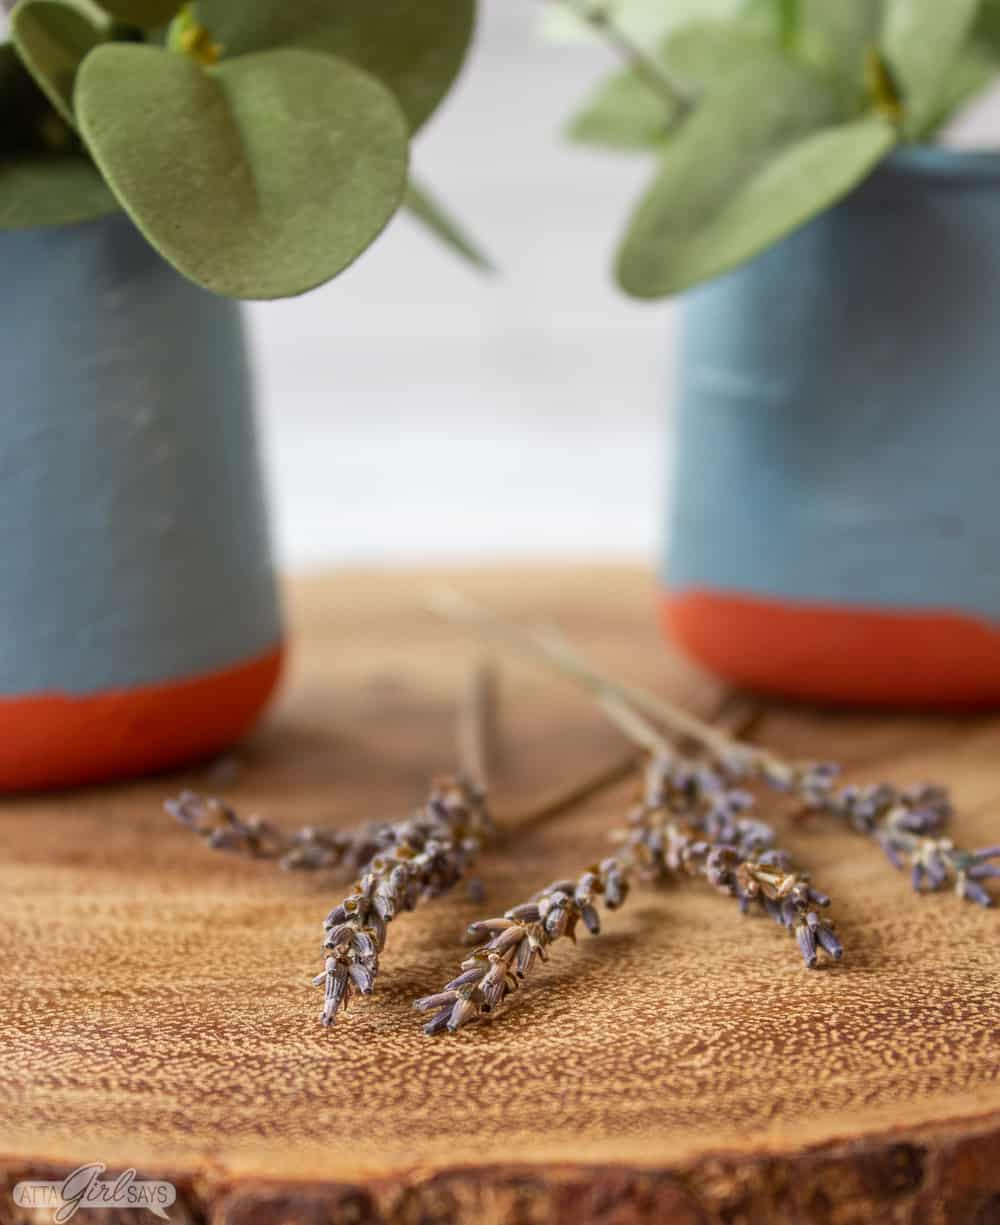 closeup photo of dried lavender stems with replica French La Fermiere yogurt pots in the background